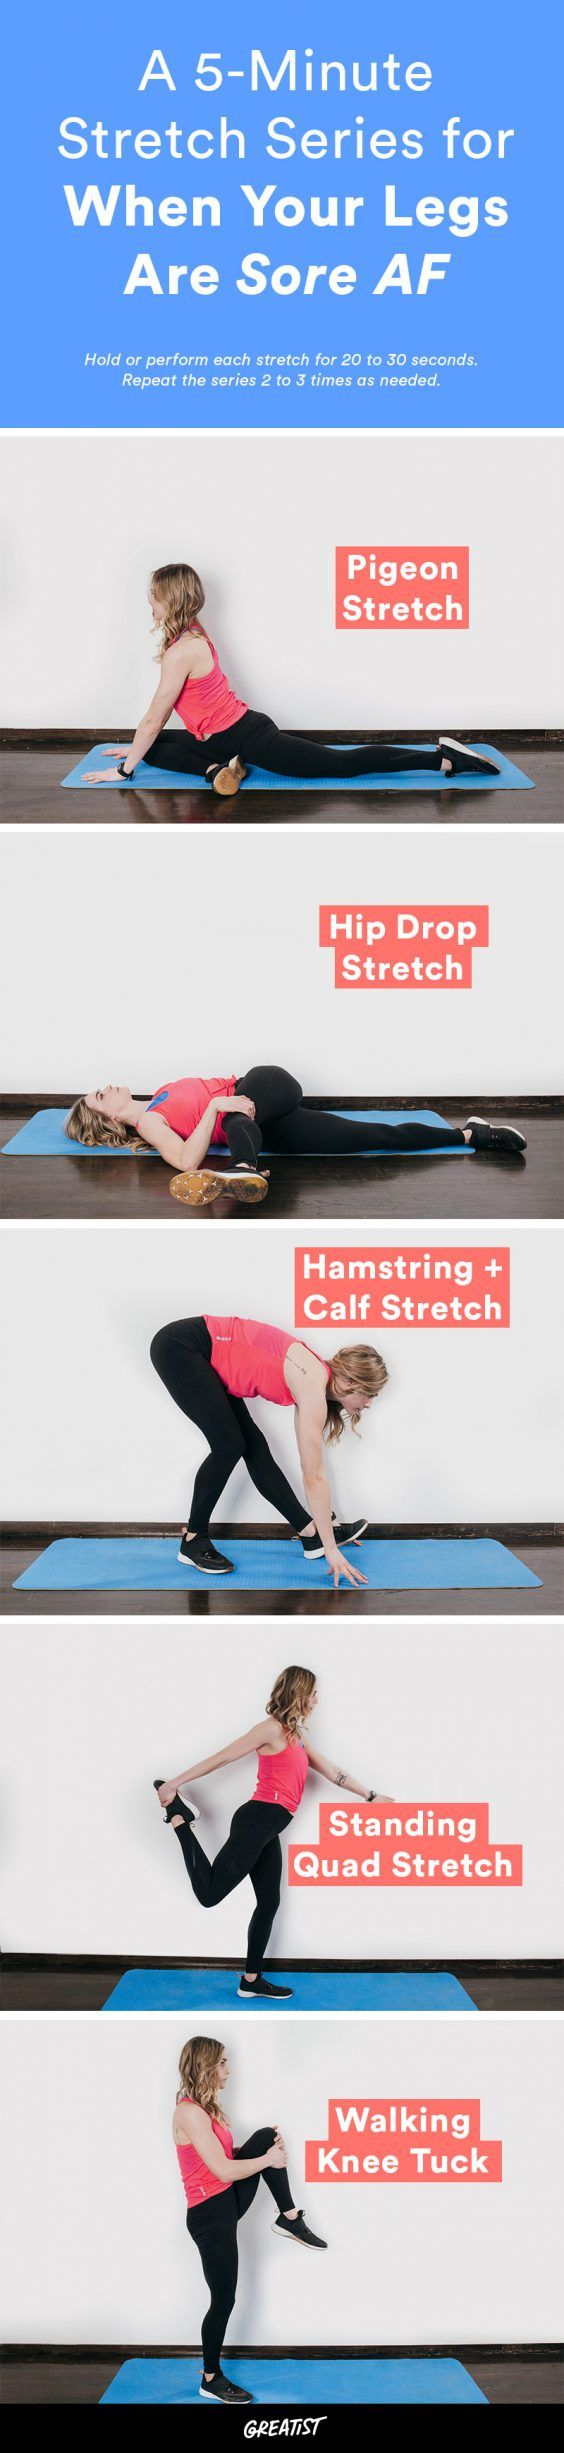 Because hobbling around isn't a good look.  #greatist https://greatist.com/fitness/stretching-exercises-lower-body-stretches